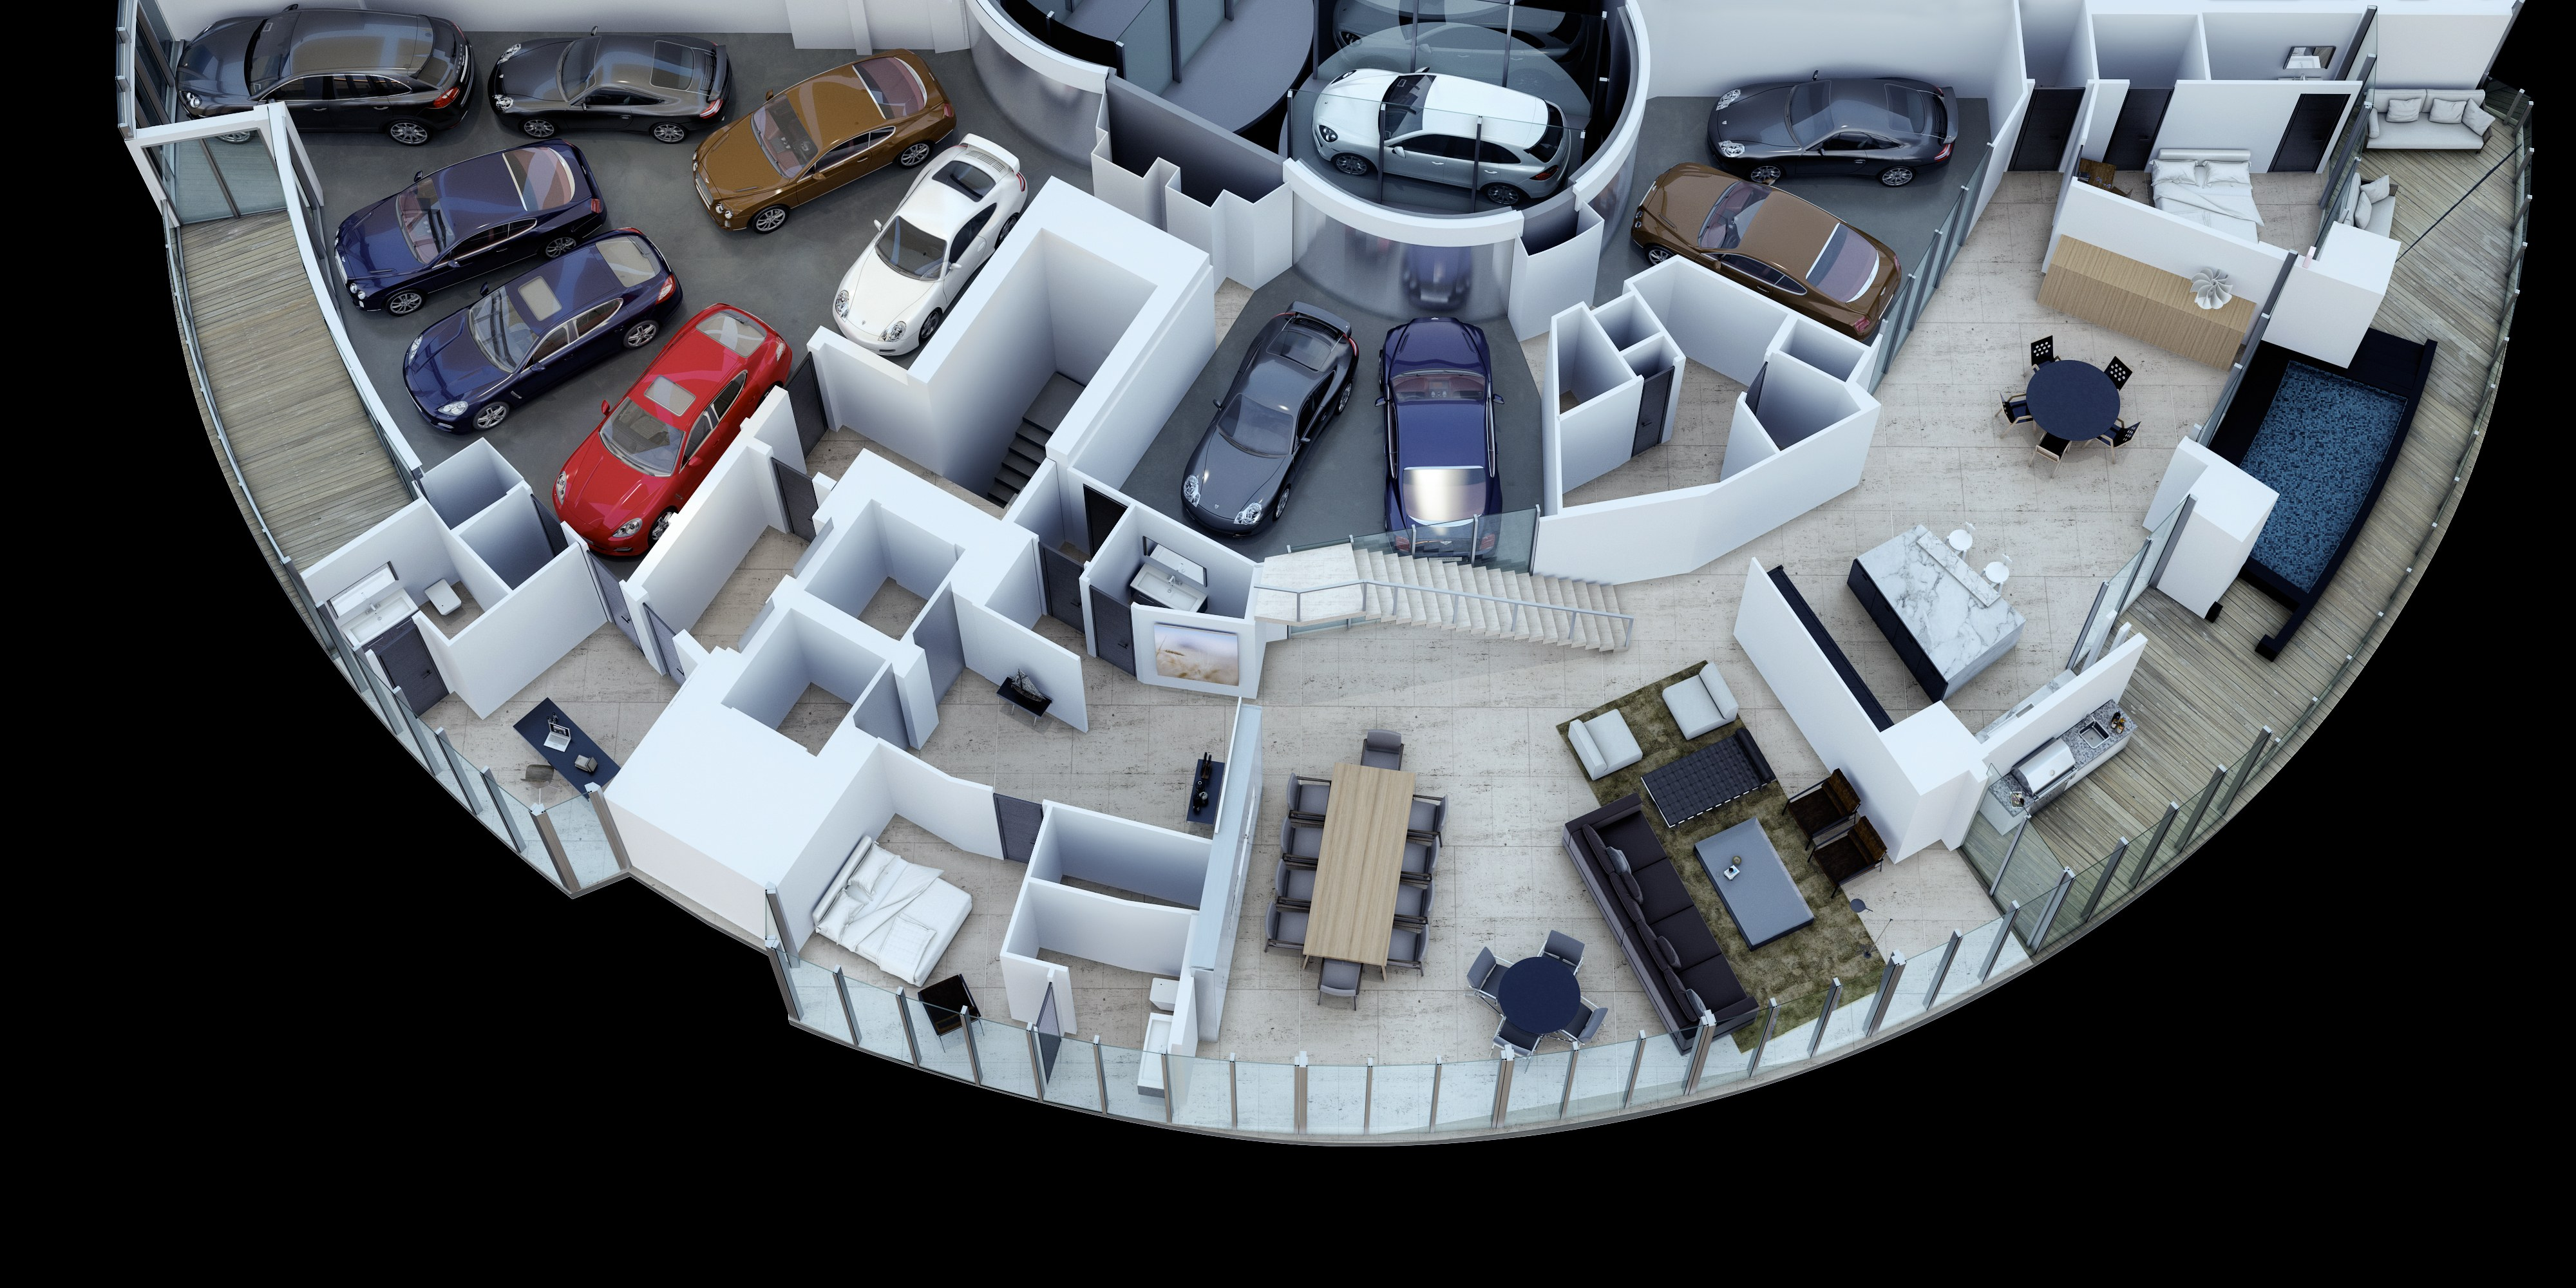 Porsche Design Tower >> Porsche Design Tower Penthouse Comes With A 11 Car Garage On The